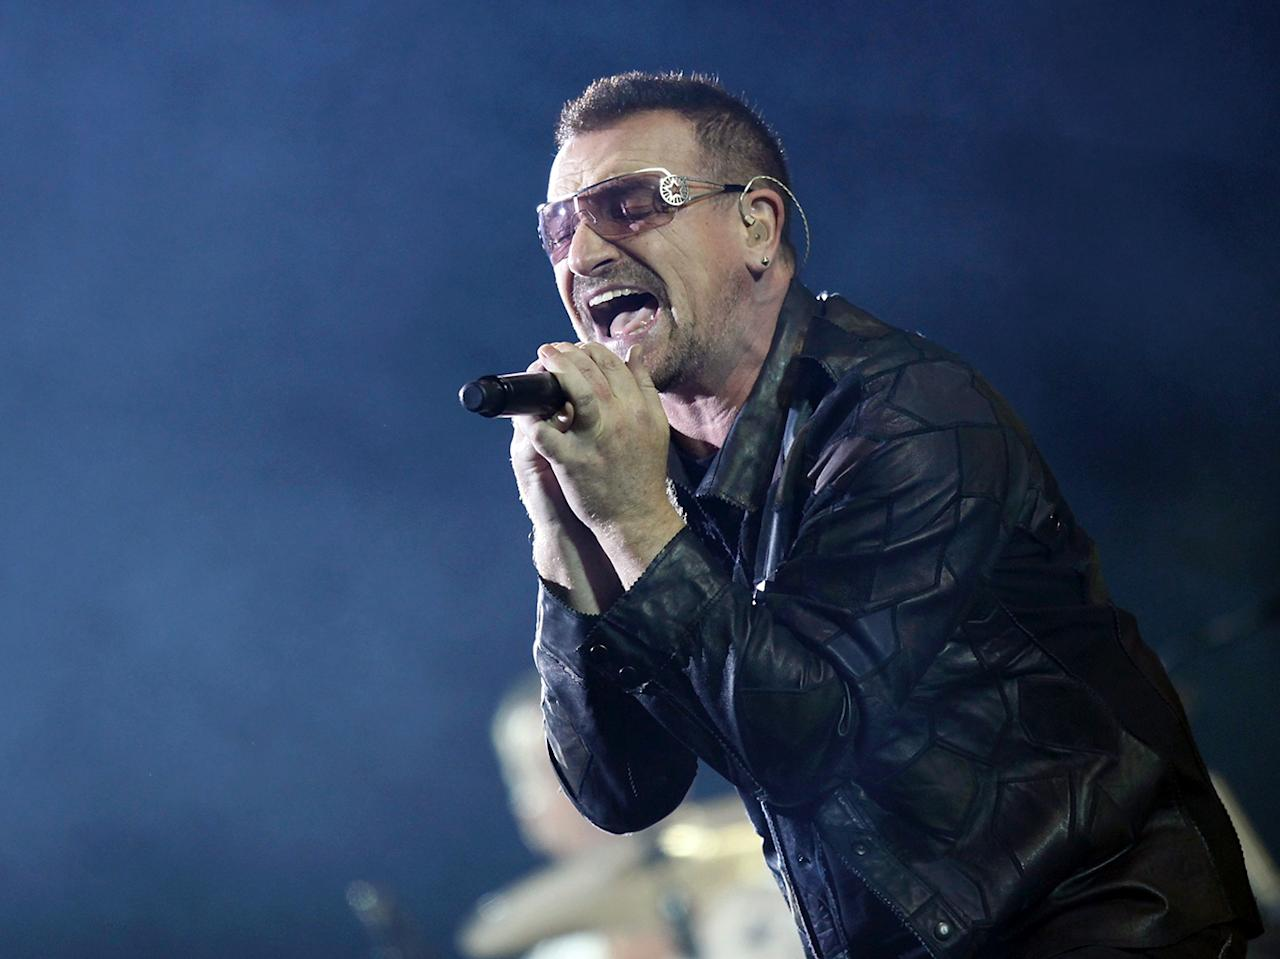 Bono U2 took the halftime stage in 2002. The real name of lead singer Bono is Paul David Hewson.